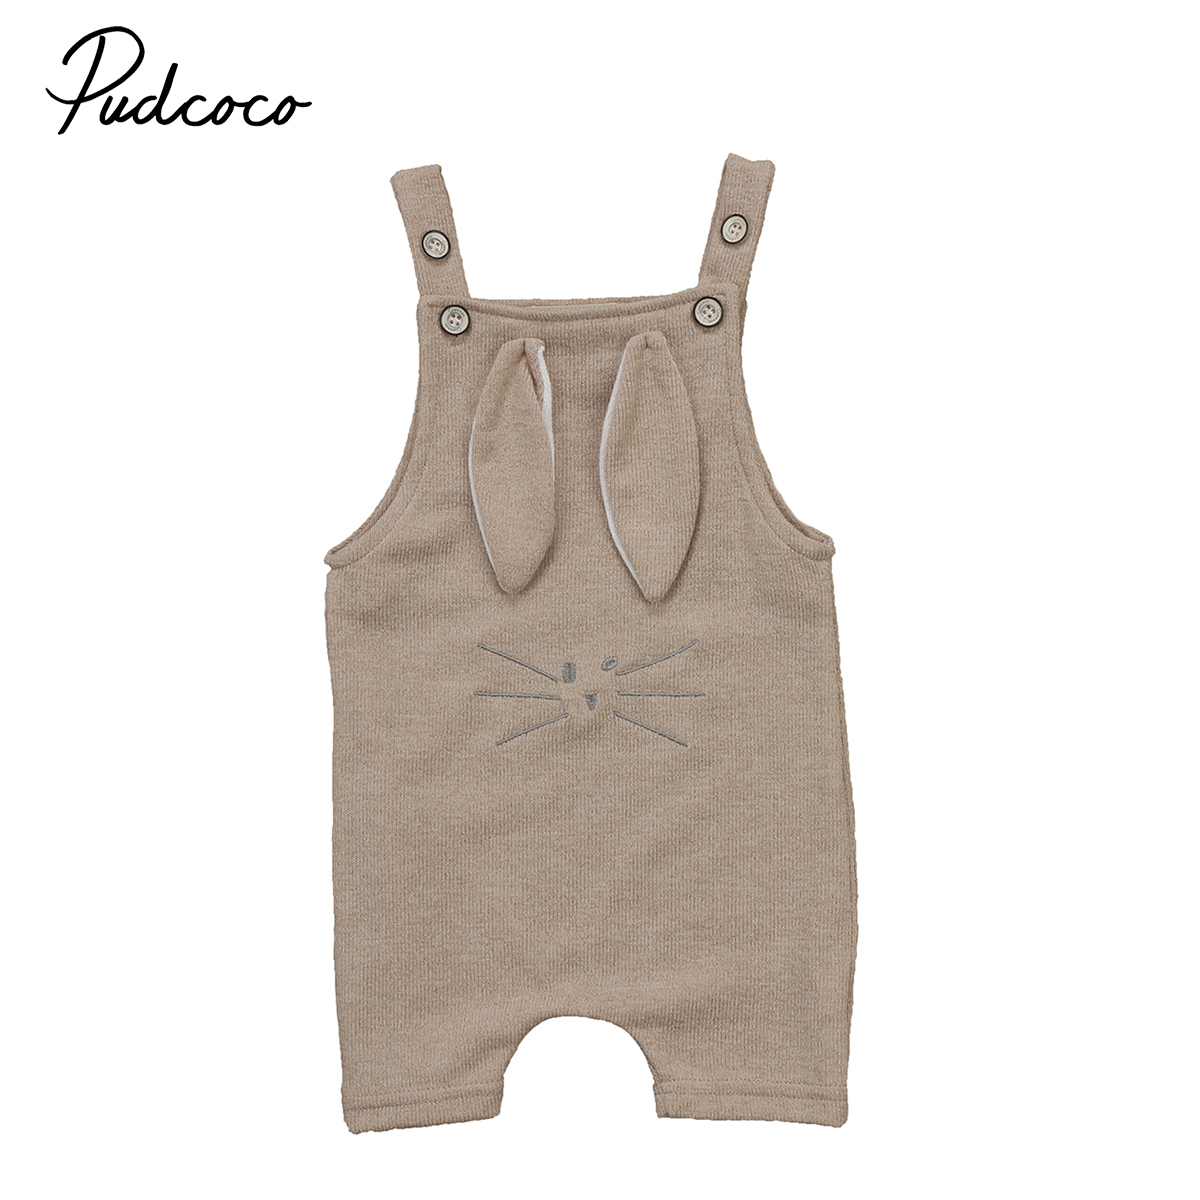 Newborn Infant Baby Boys Girls Kids Cotton Knitted One-Piece Romper Clothing 3D Rabbit Ears Hooded Jumpsuit Clothes Bib Pants mother nest 3sets lot wholesale autumn toddle girl long sleeve baby clothing one piece boys baby pajamas infant clothes rompers